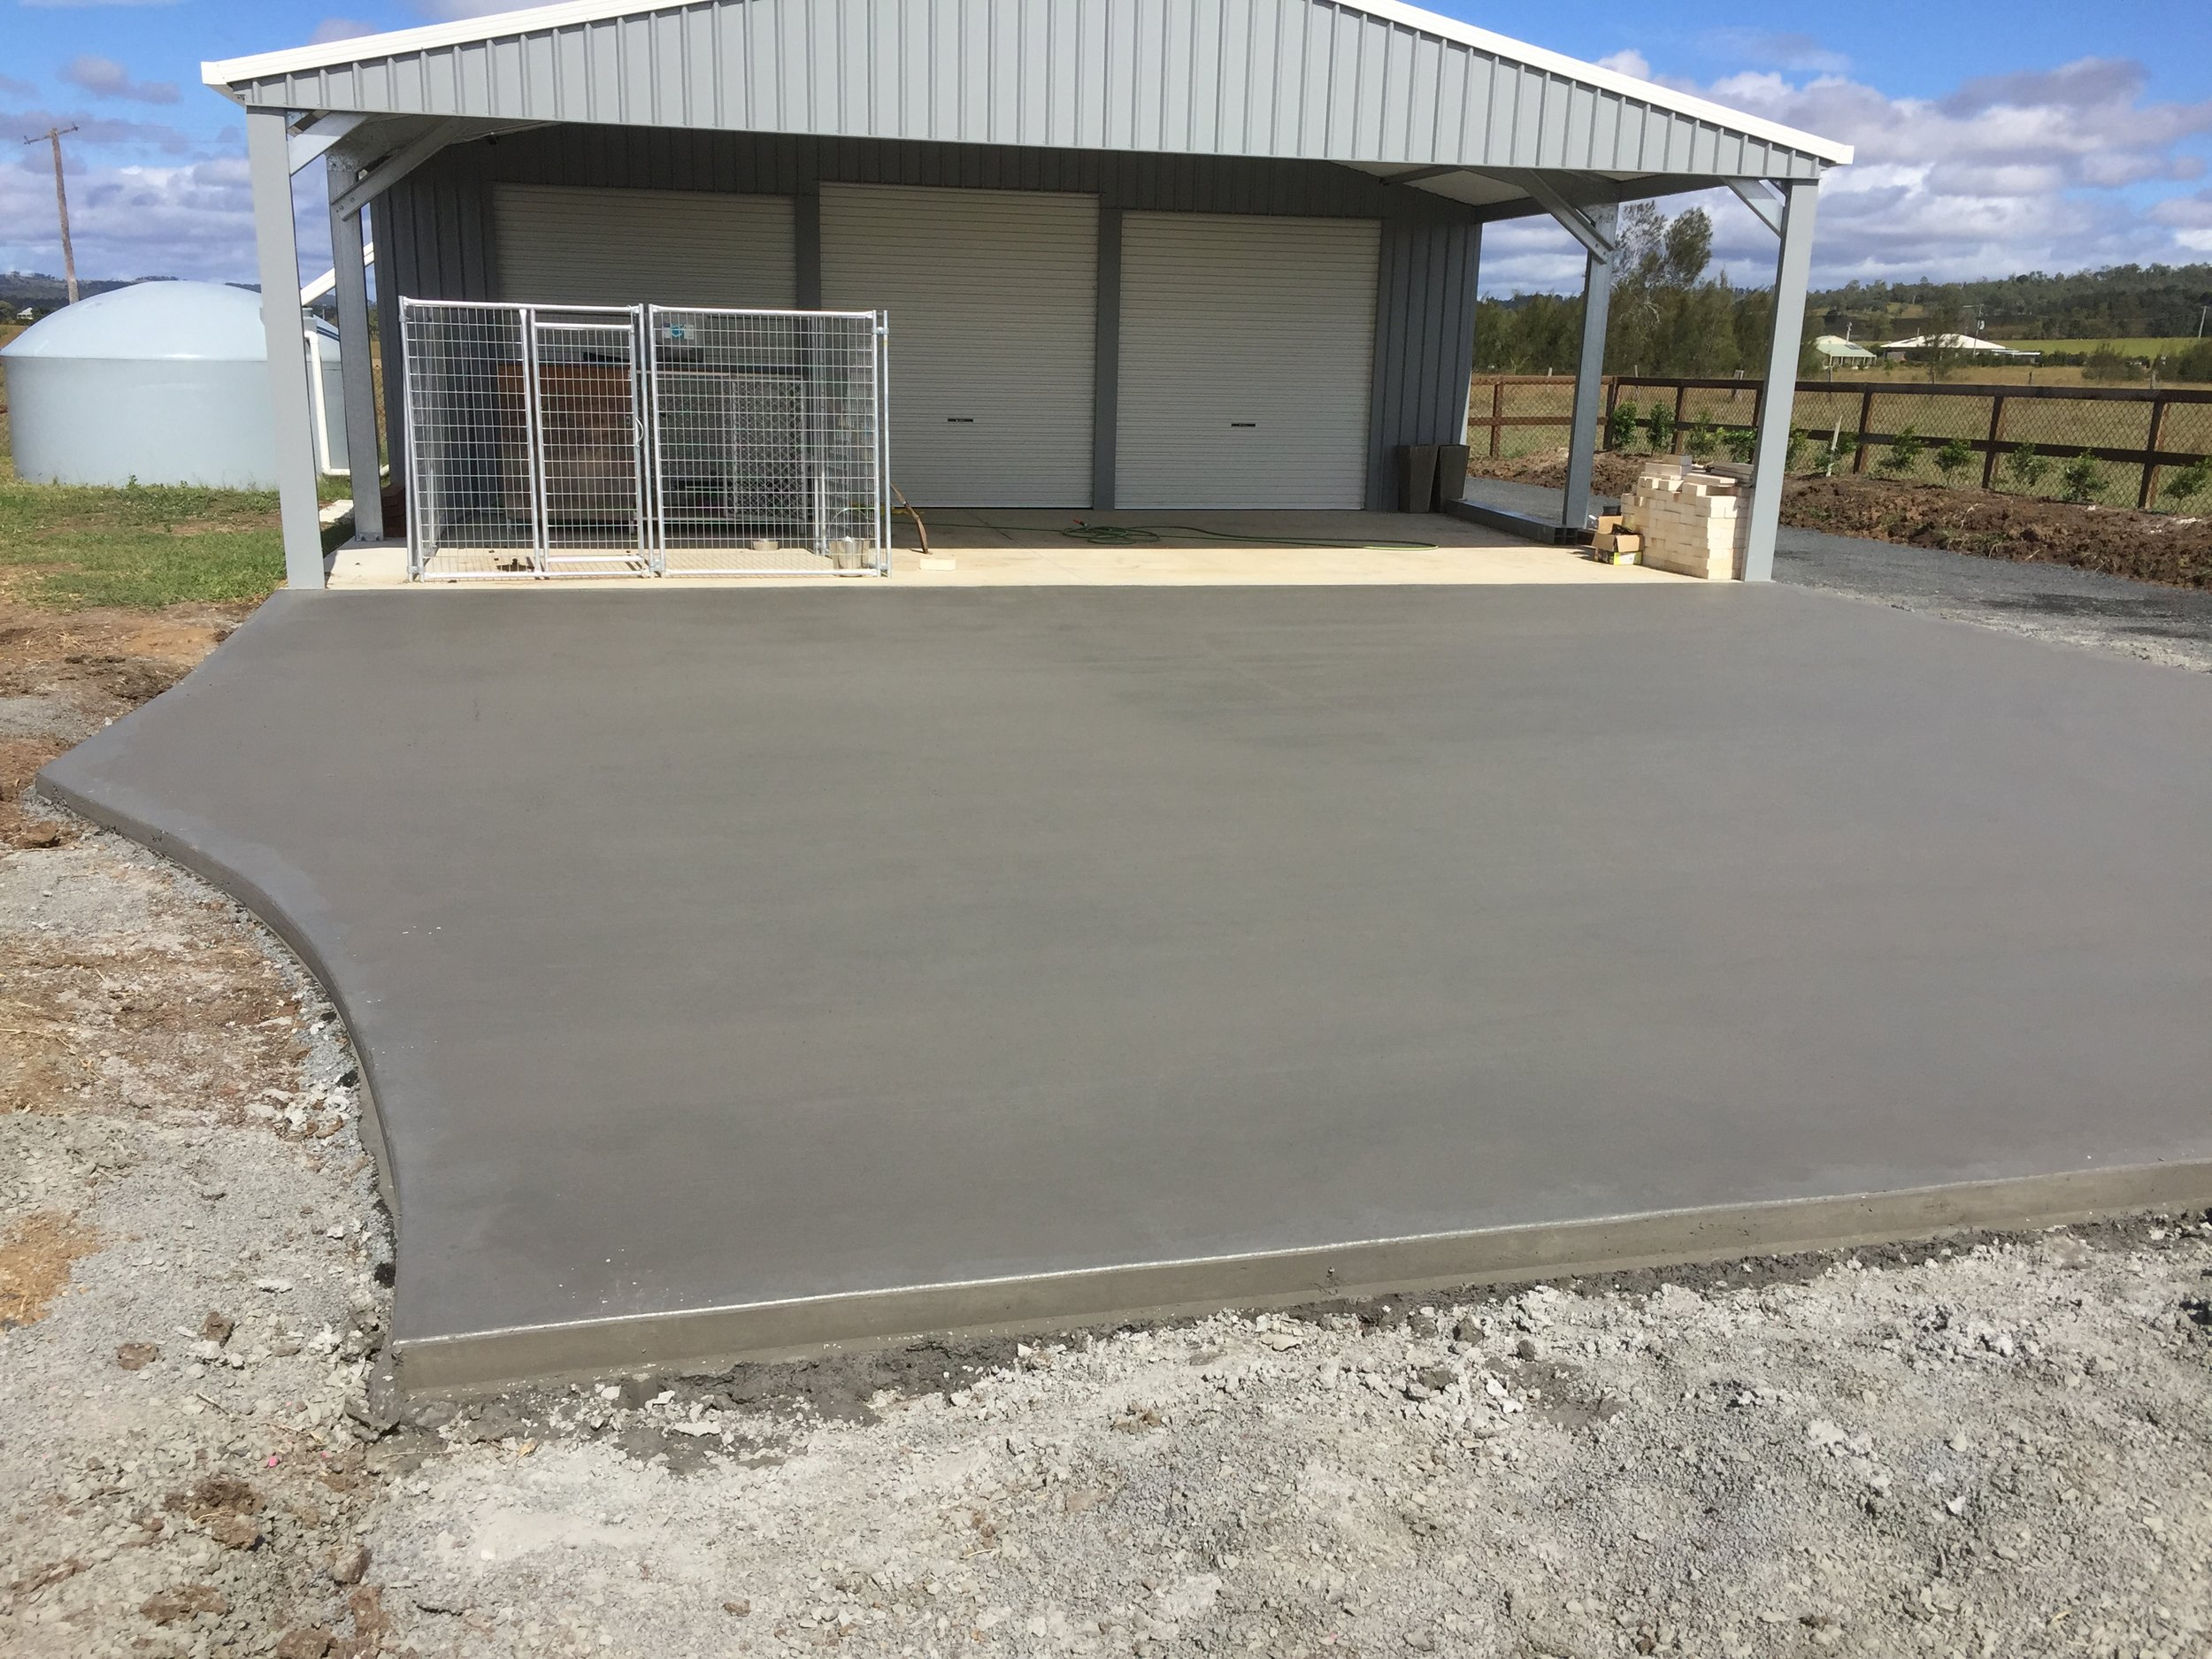 CONCRETING - We offer concrete services to clients all over Brisbane and Ipswich, concreting is a major part of what we do for our clients.